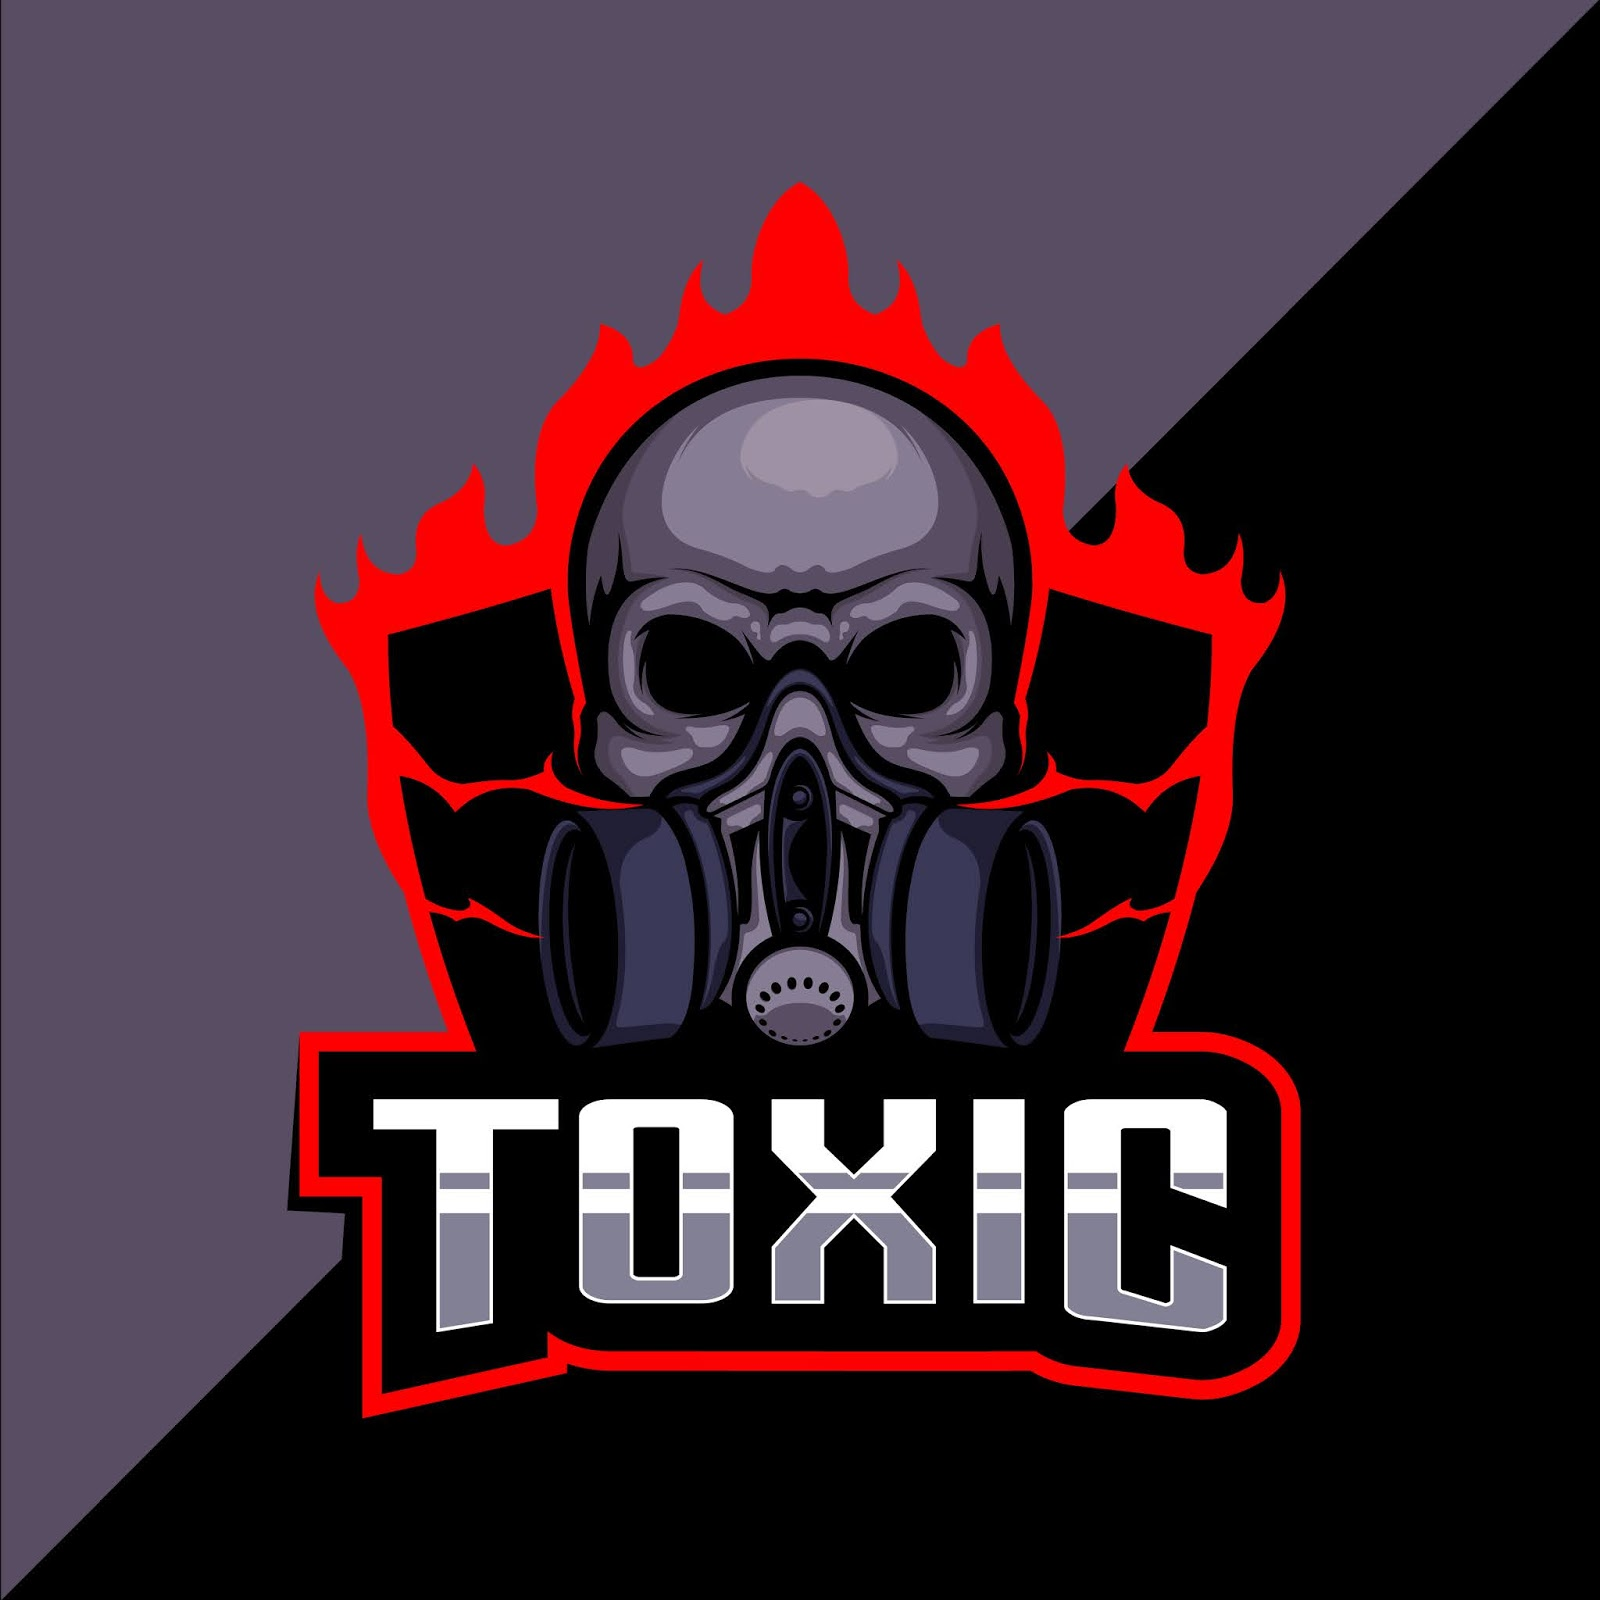 Toxic Skull Esport Logo Design Free Download Vector CDR, AI, EPS and PNG Formats